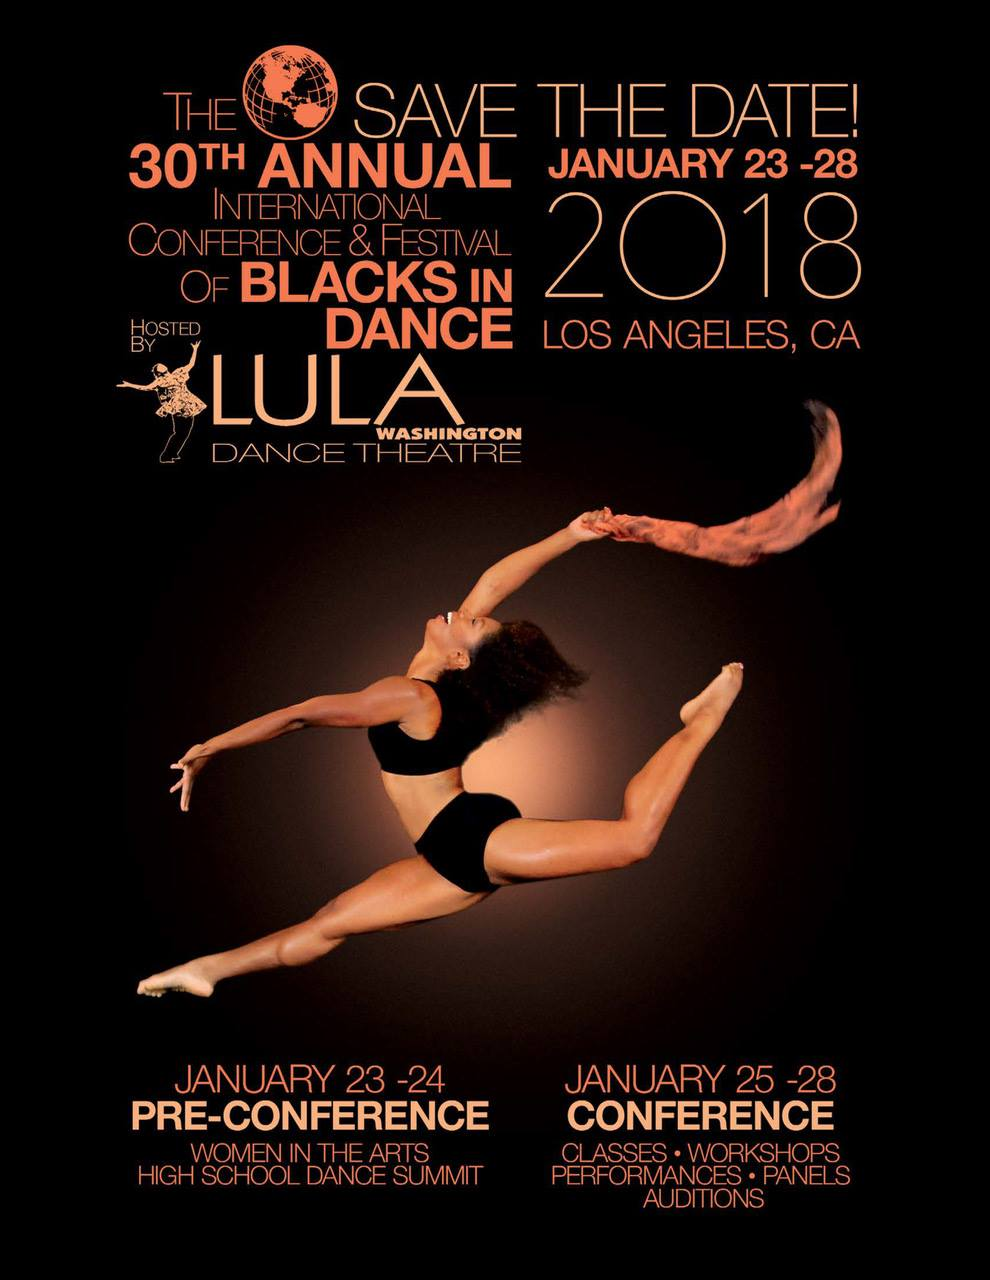 IABD is dedicated to exploring the experience of blacks through dance.